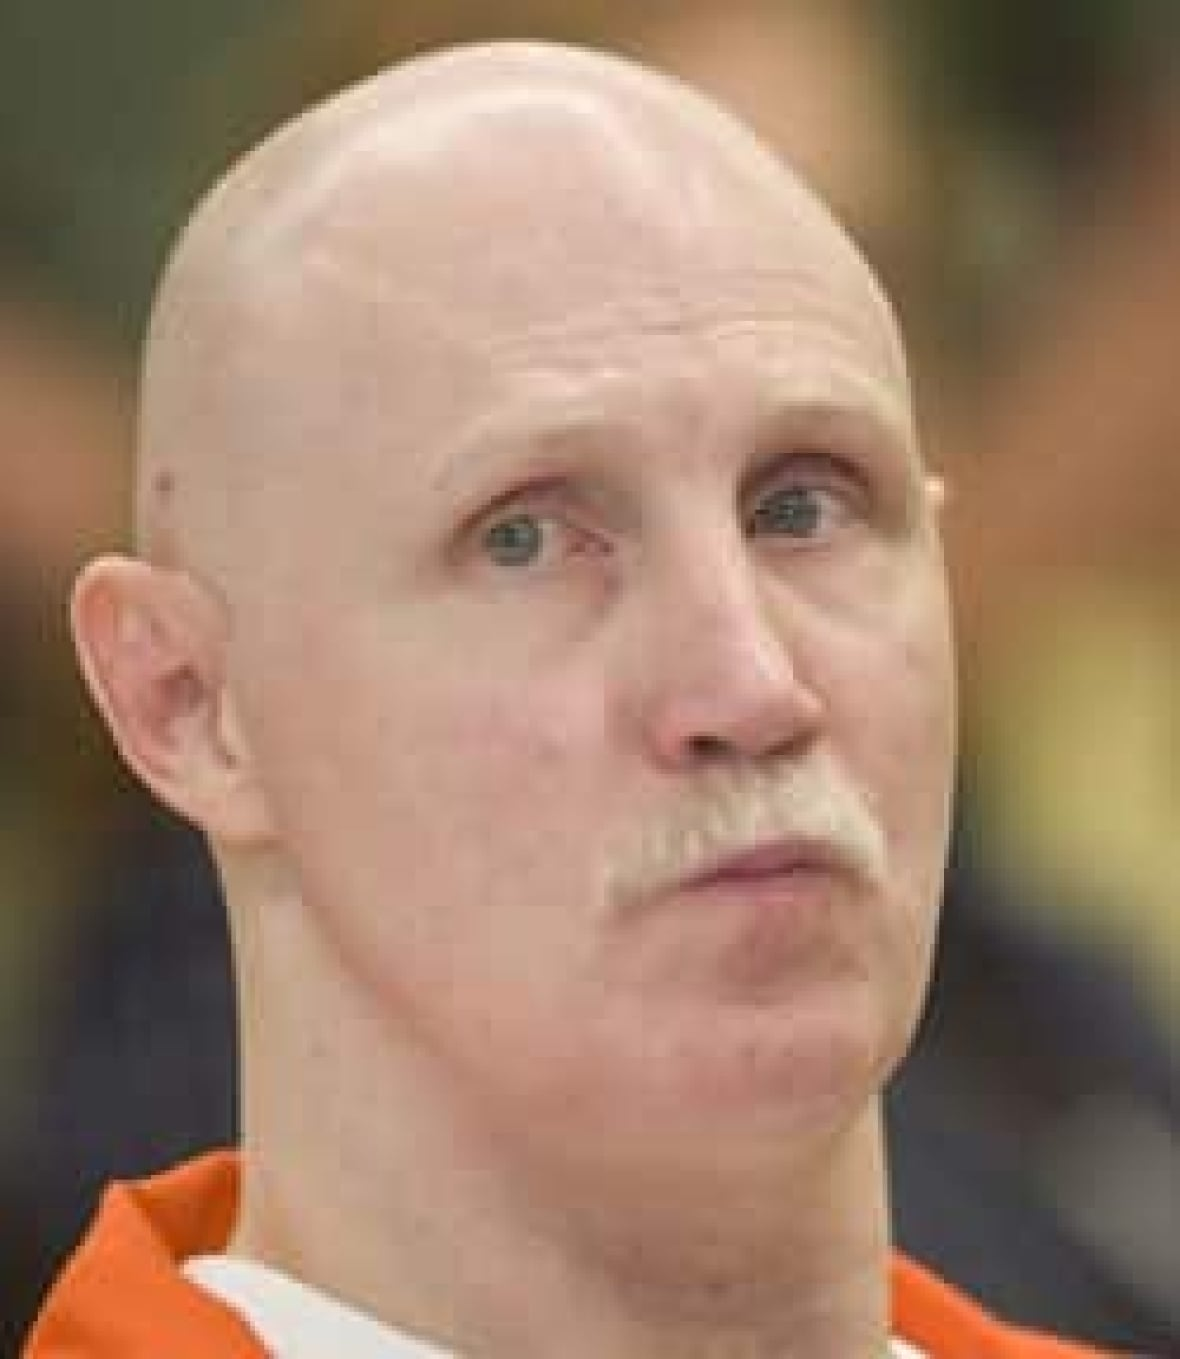 Convicted killer Ronnie Lee Gardner to be executed by